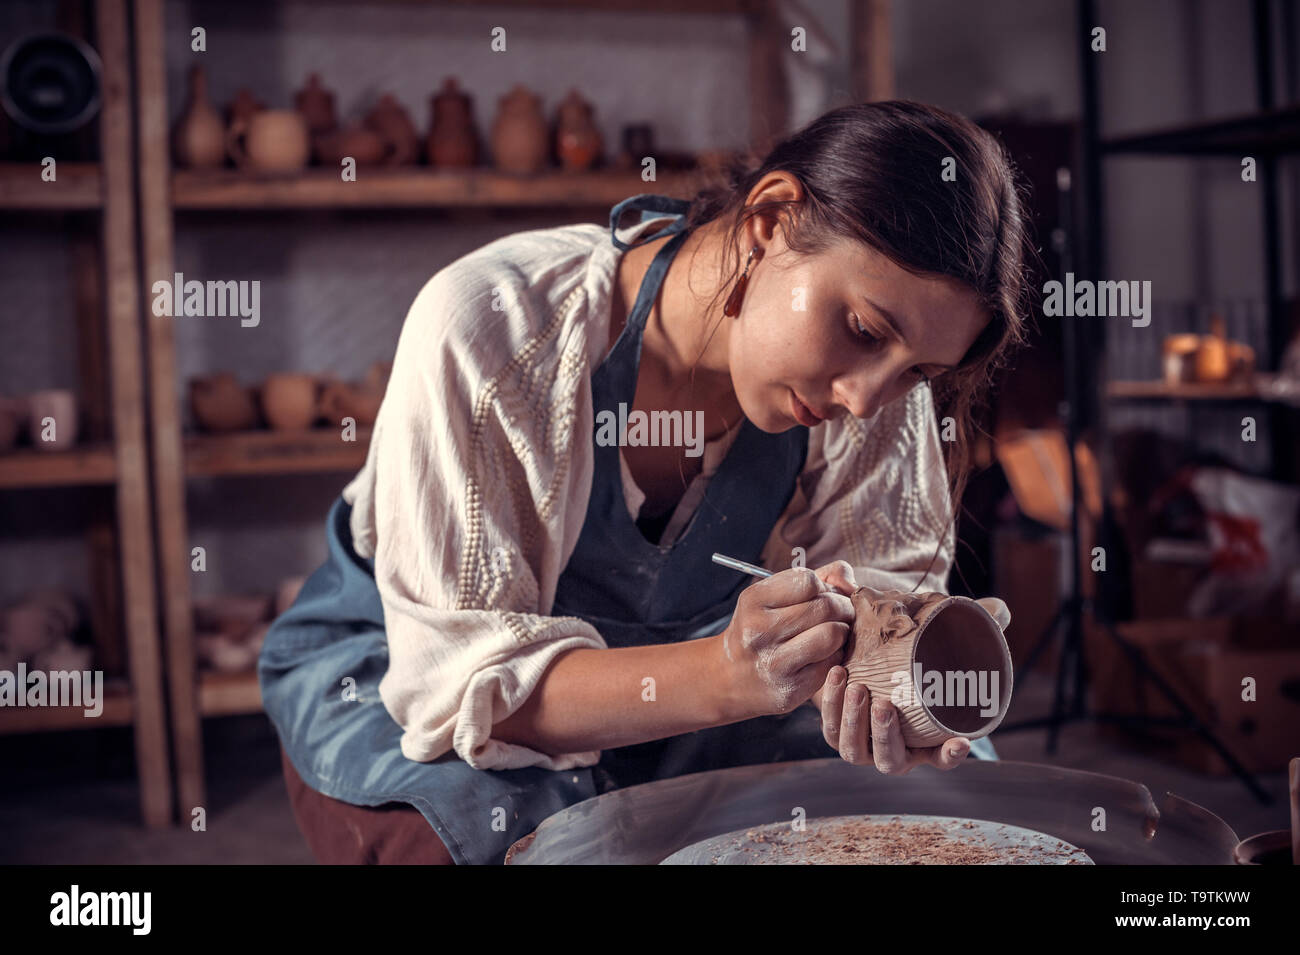 Stylish artisan working with pottery at the ceramic workshop. Handmade products. - Stock Image